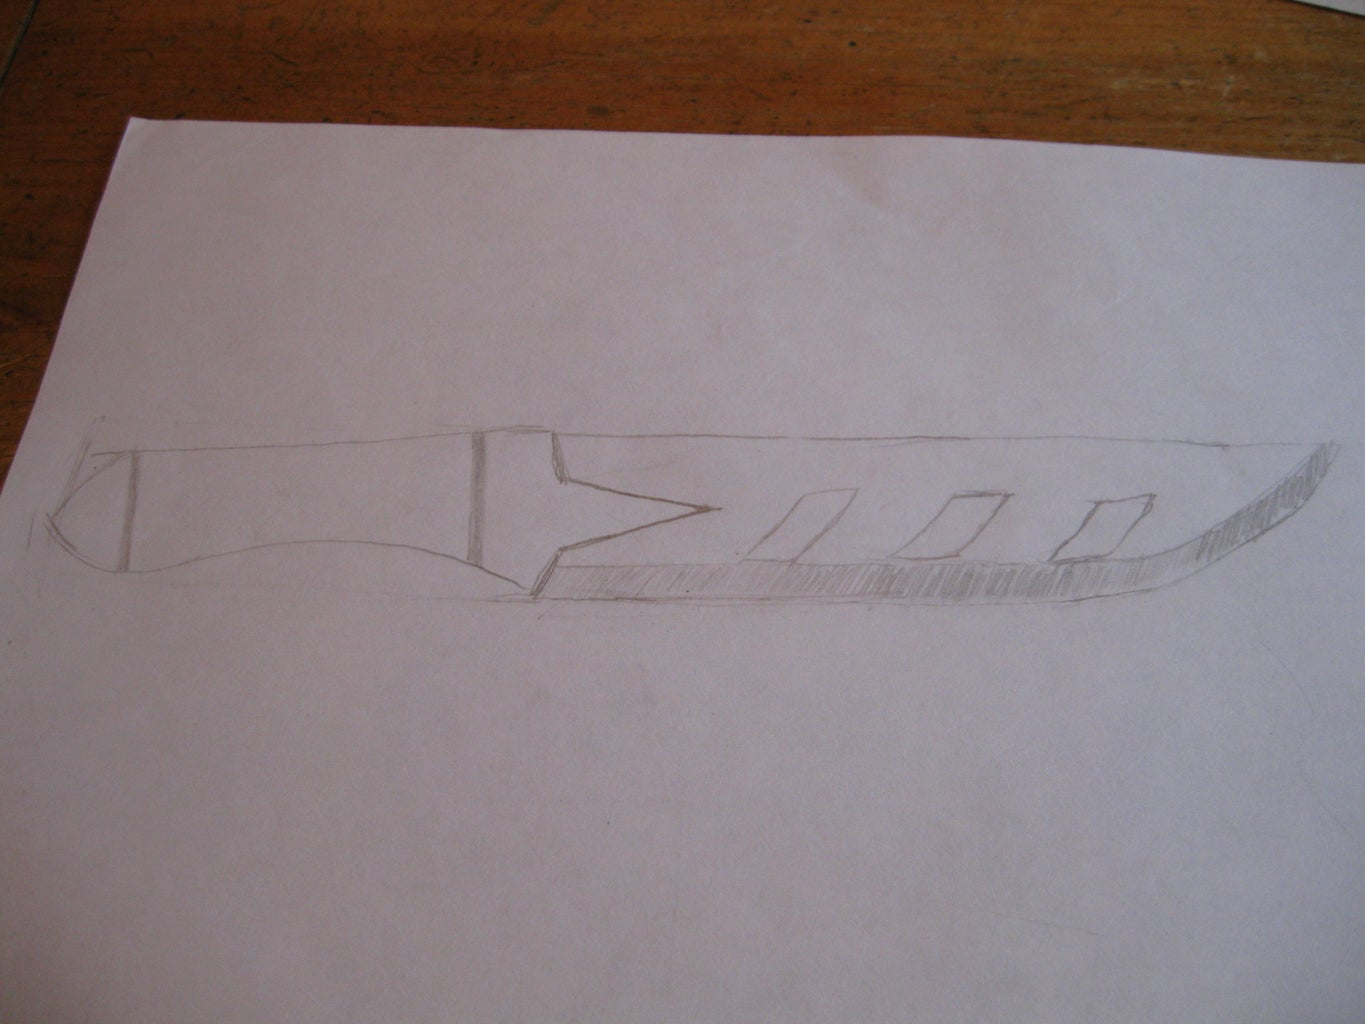 Basic Design: Overall and the Handle